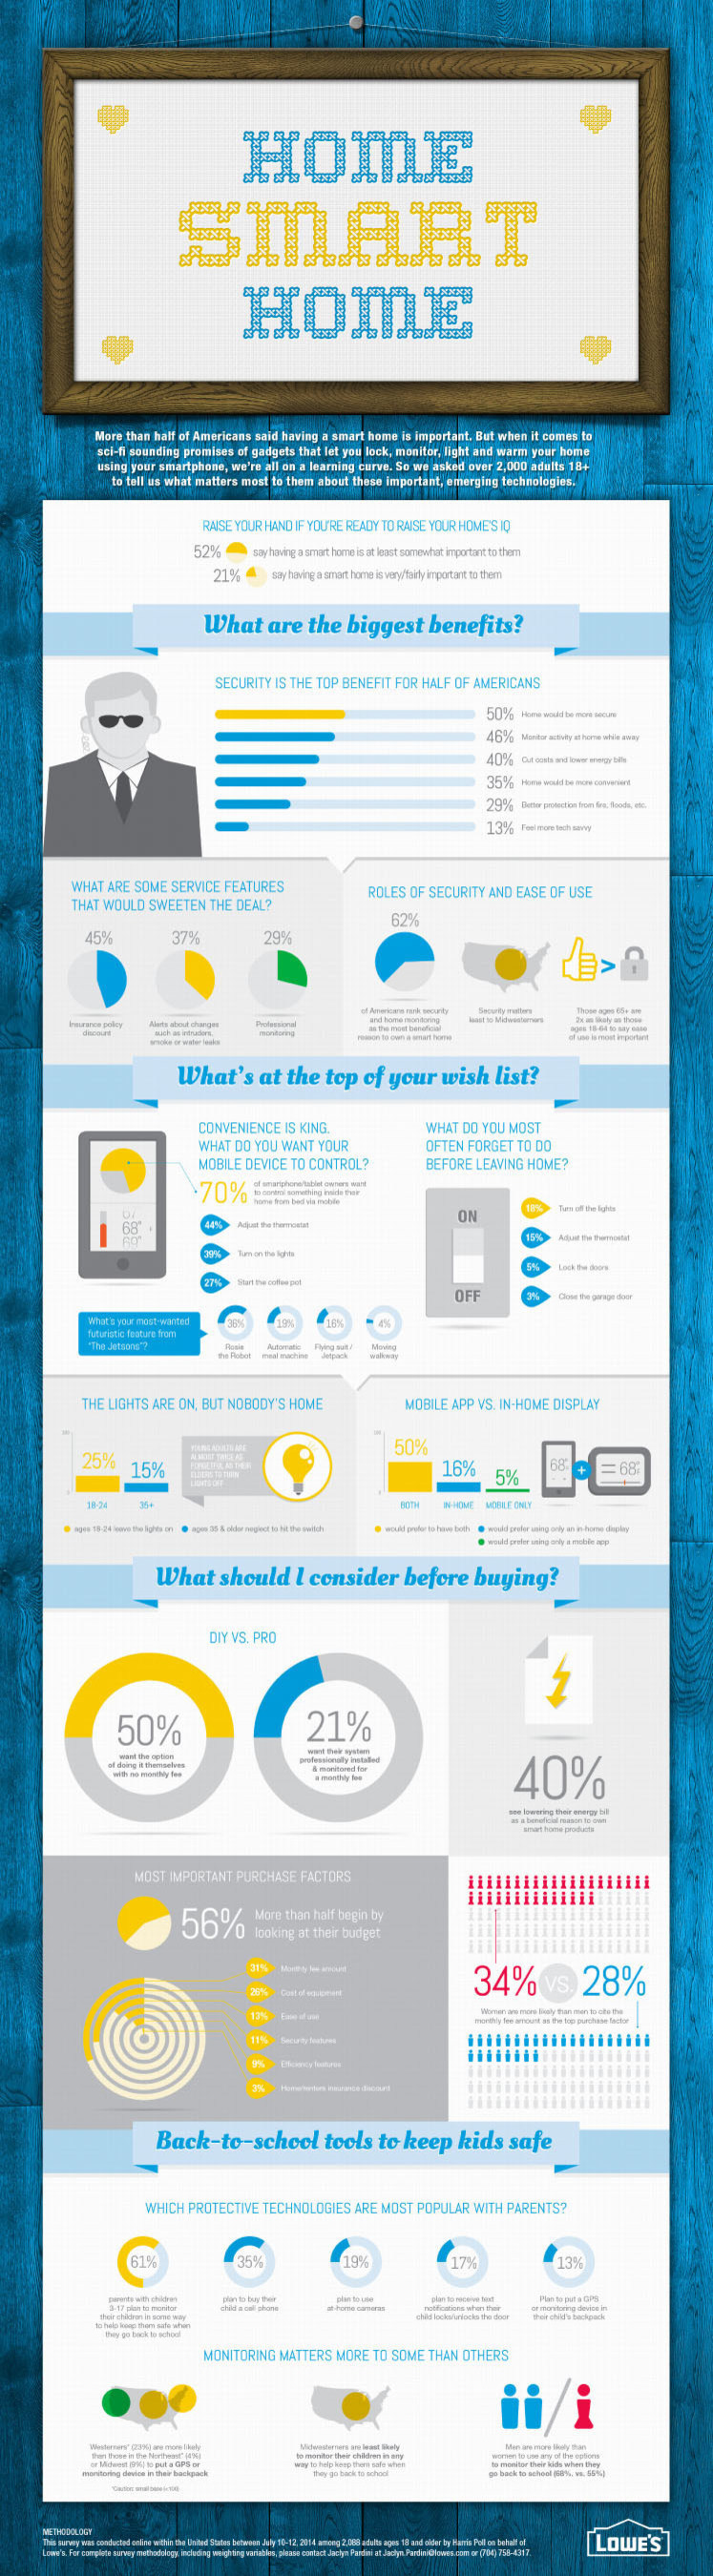 Lowe's 2014 Smart Home Survey examined Americans' attitudes and experiences with home automation, with a particular look at the most important features and top reasons for owning smart home products. Download the infographic for more information. (PRNewsFoto/Lowe's Companies, Inc.)